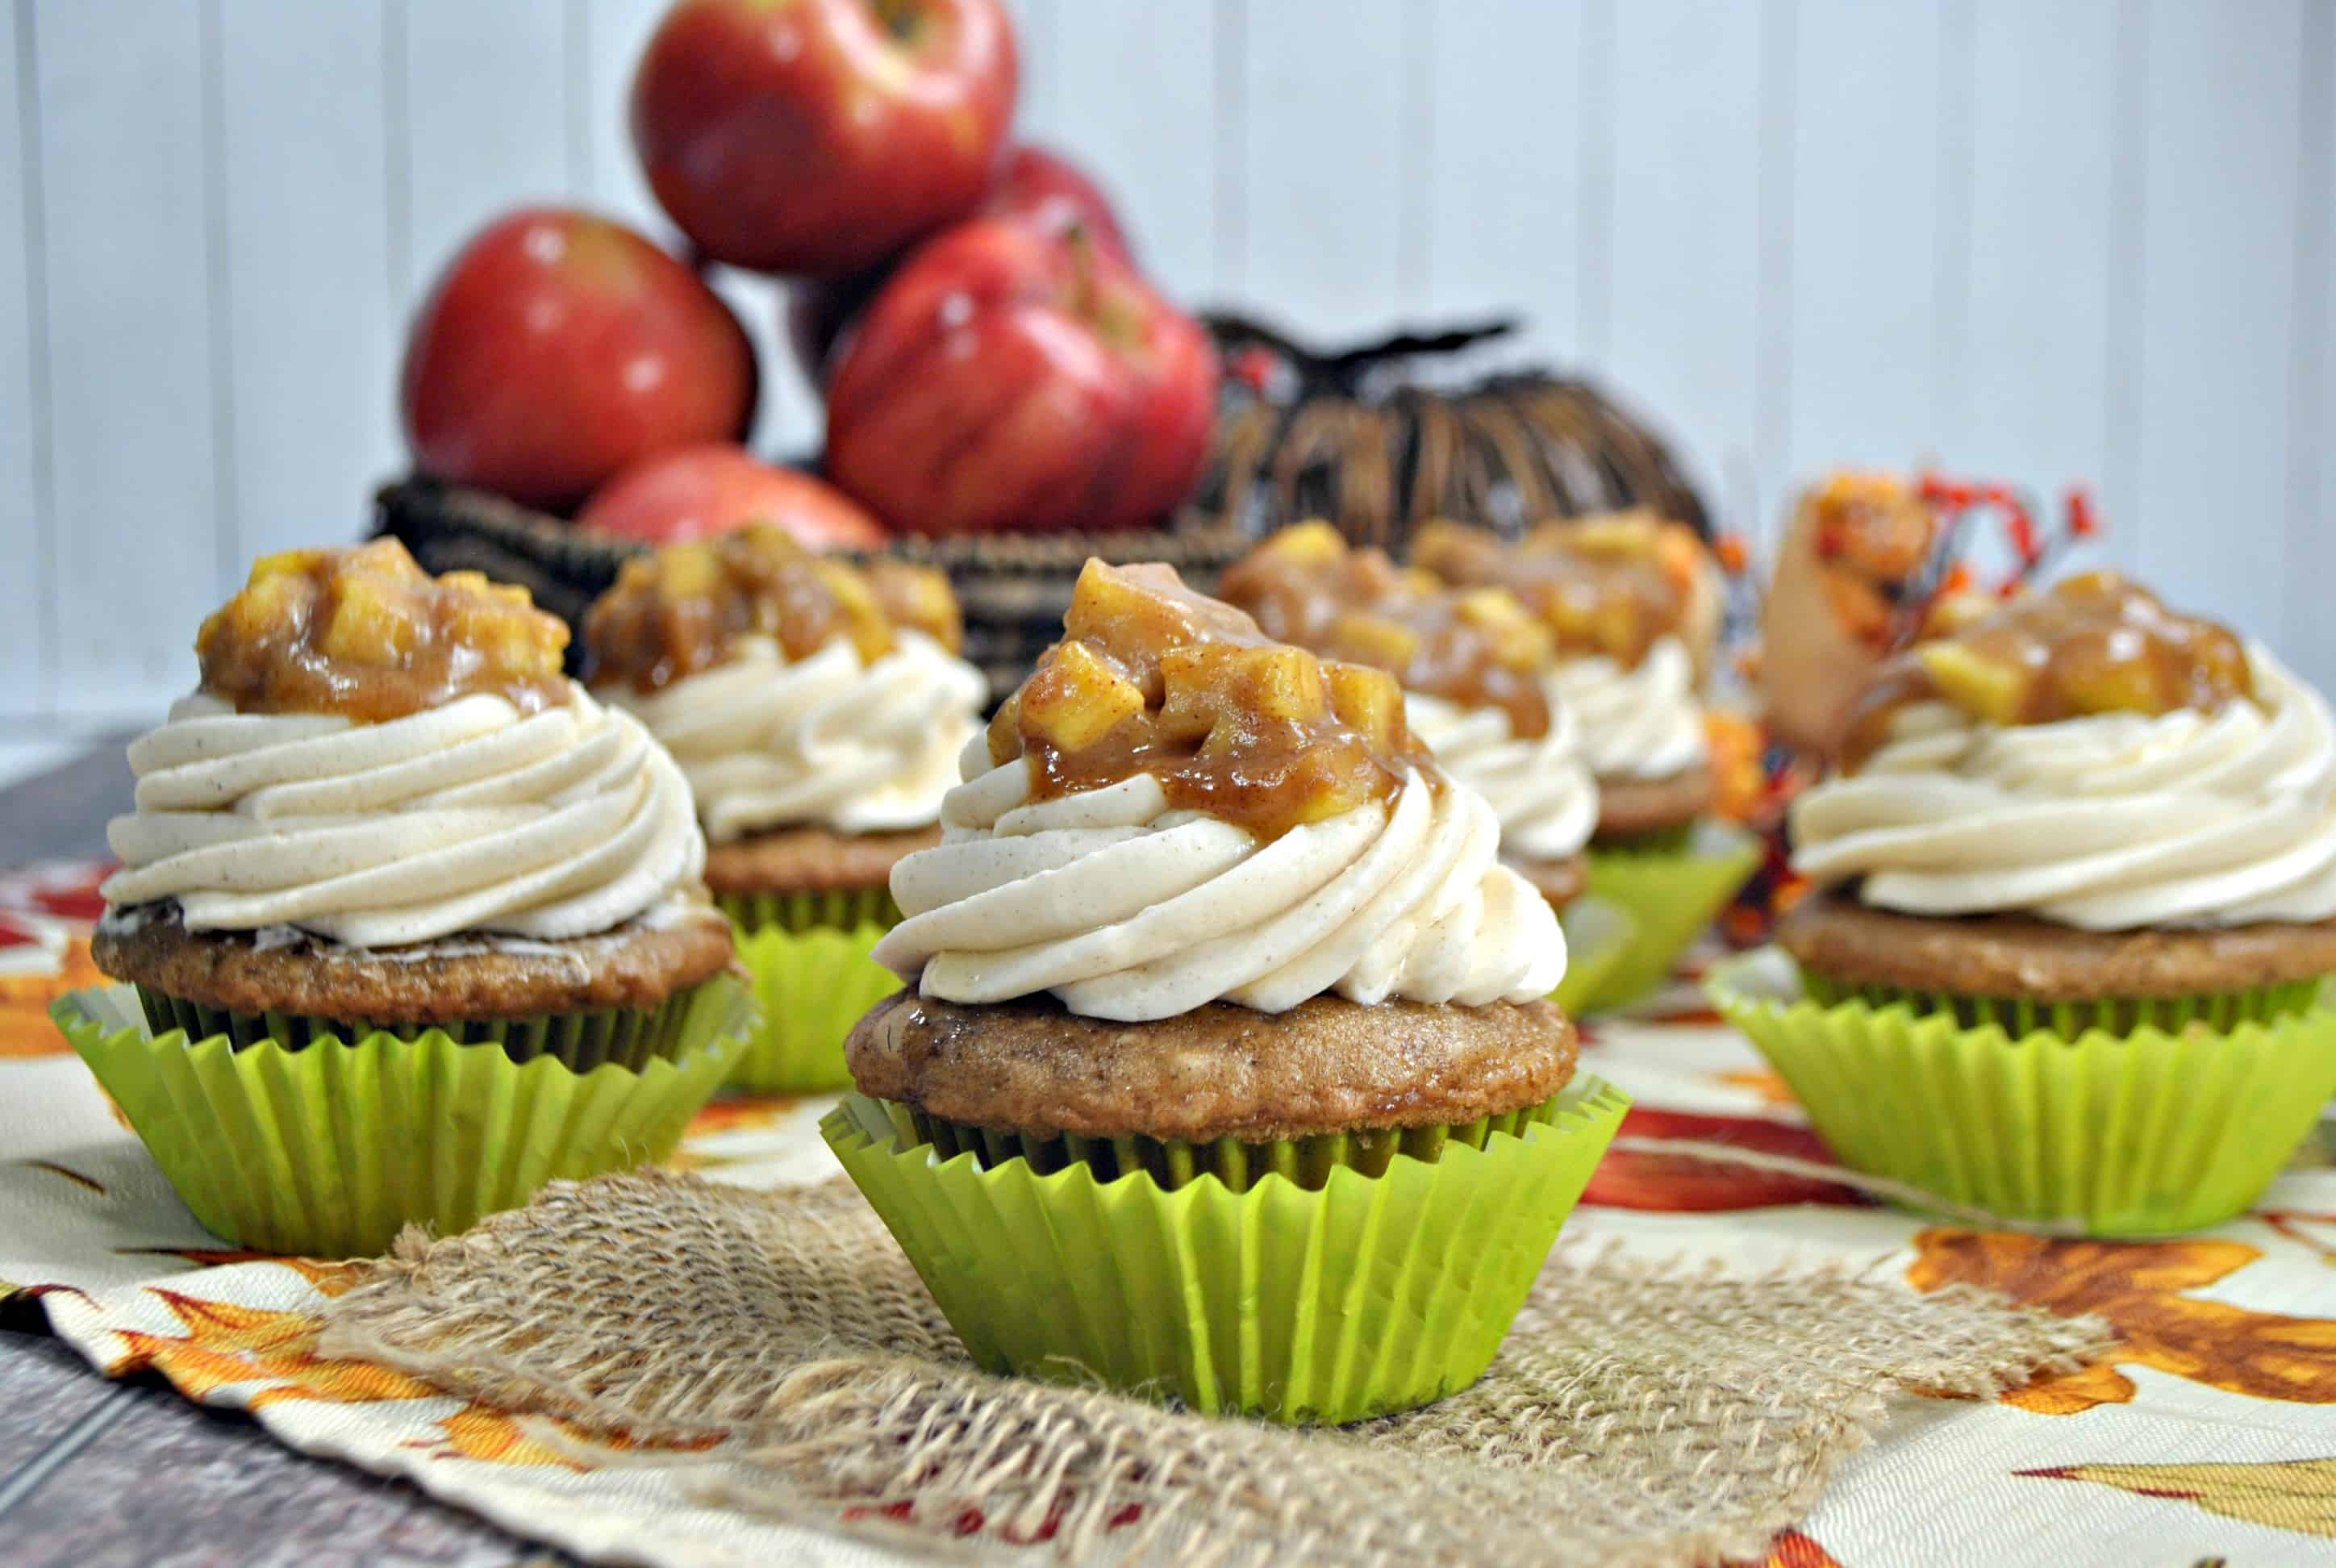 Apple Cupcakes with Apple Pie Topping